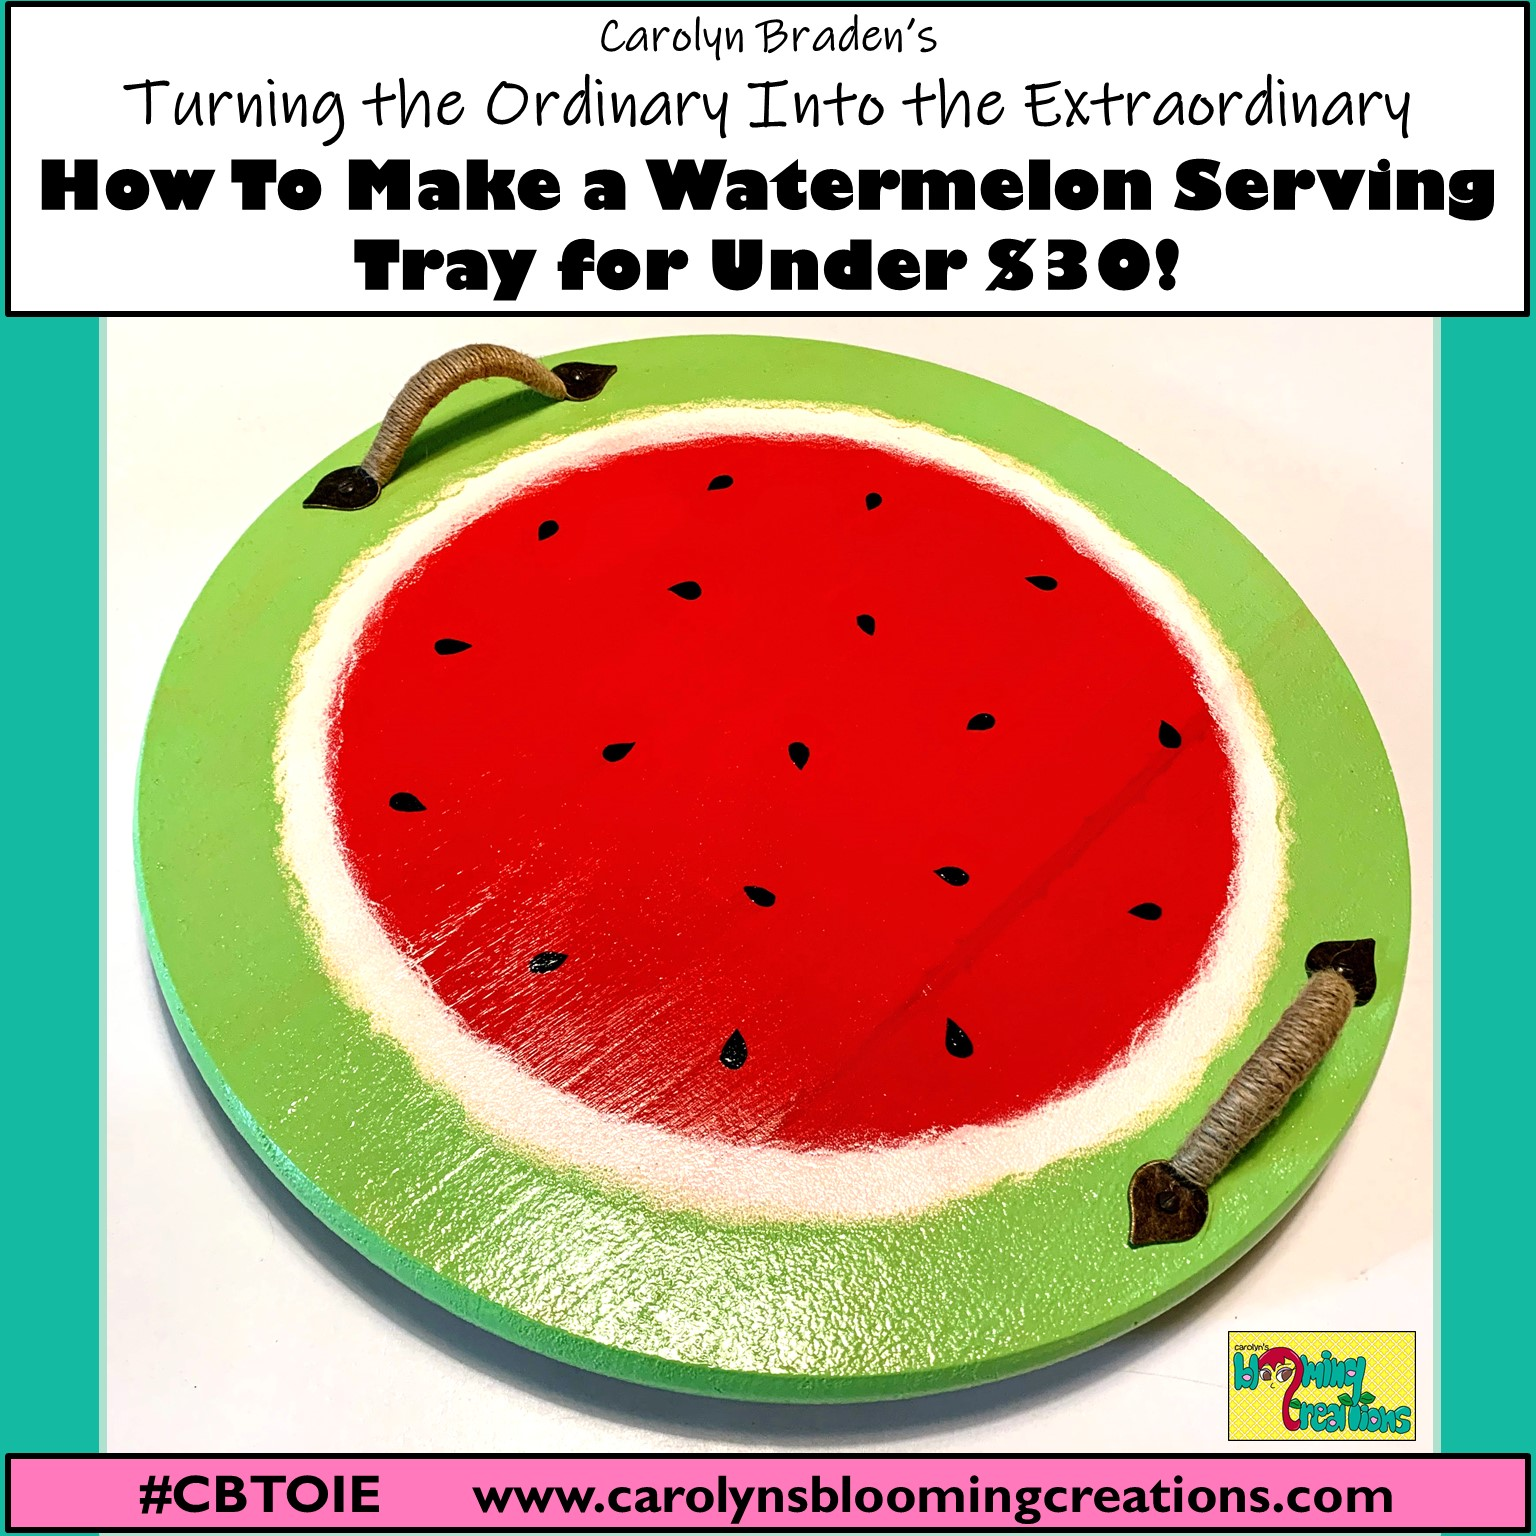 How to Make a Watermelon Serving Tray CBTOIE 1.jpg